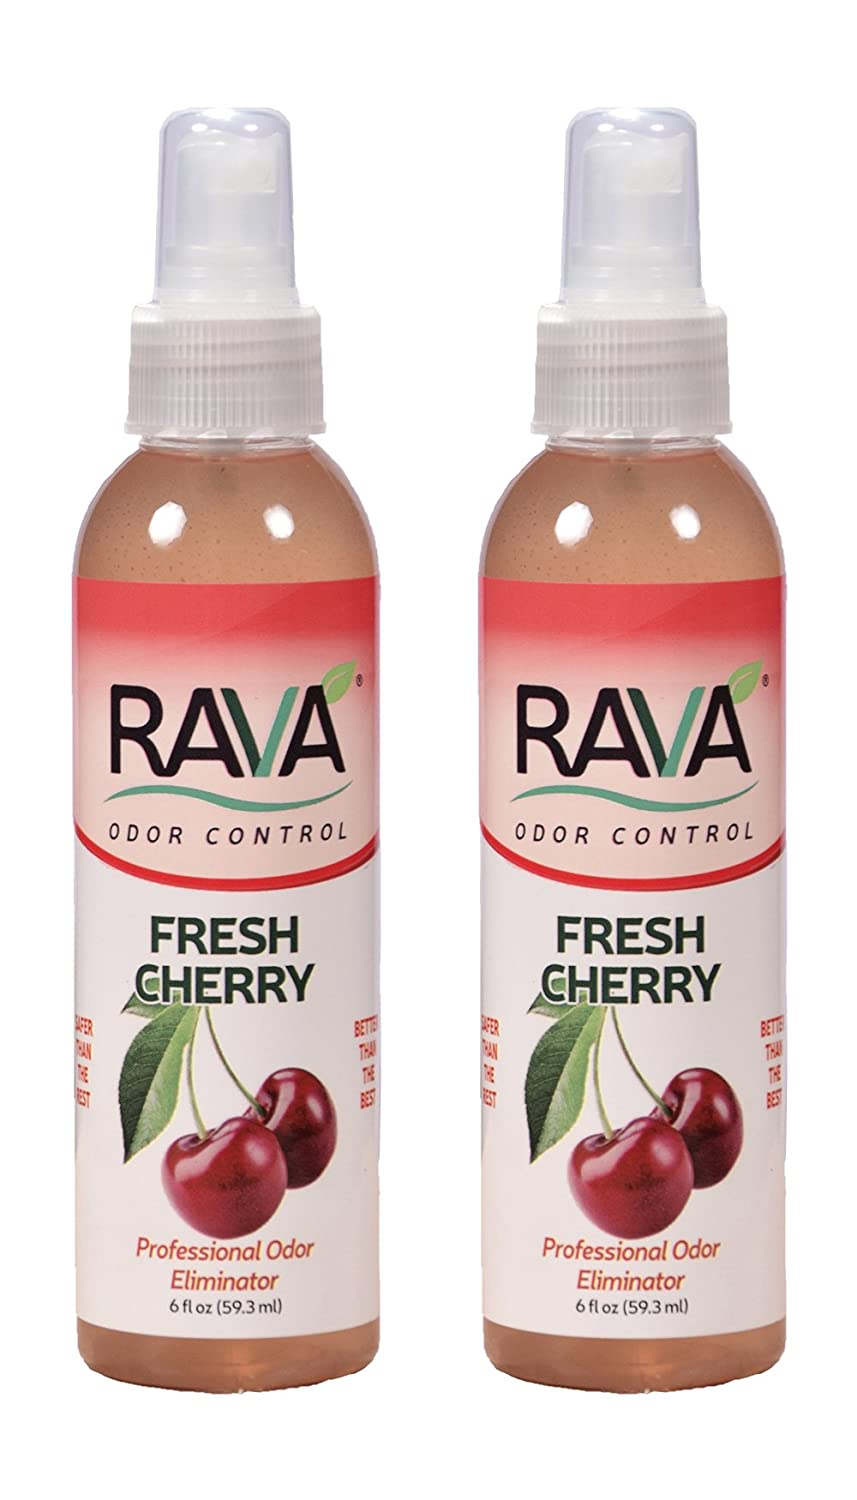 RAVA Odor Control. 99% Food Grade, Controls Dog and cat Urine Smell, Skunk Odor, Tobacco Smoke Weed Smoke Blunt smoke6oz Spray 2 Pack Fresh Cherry Fragrance